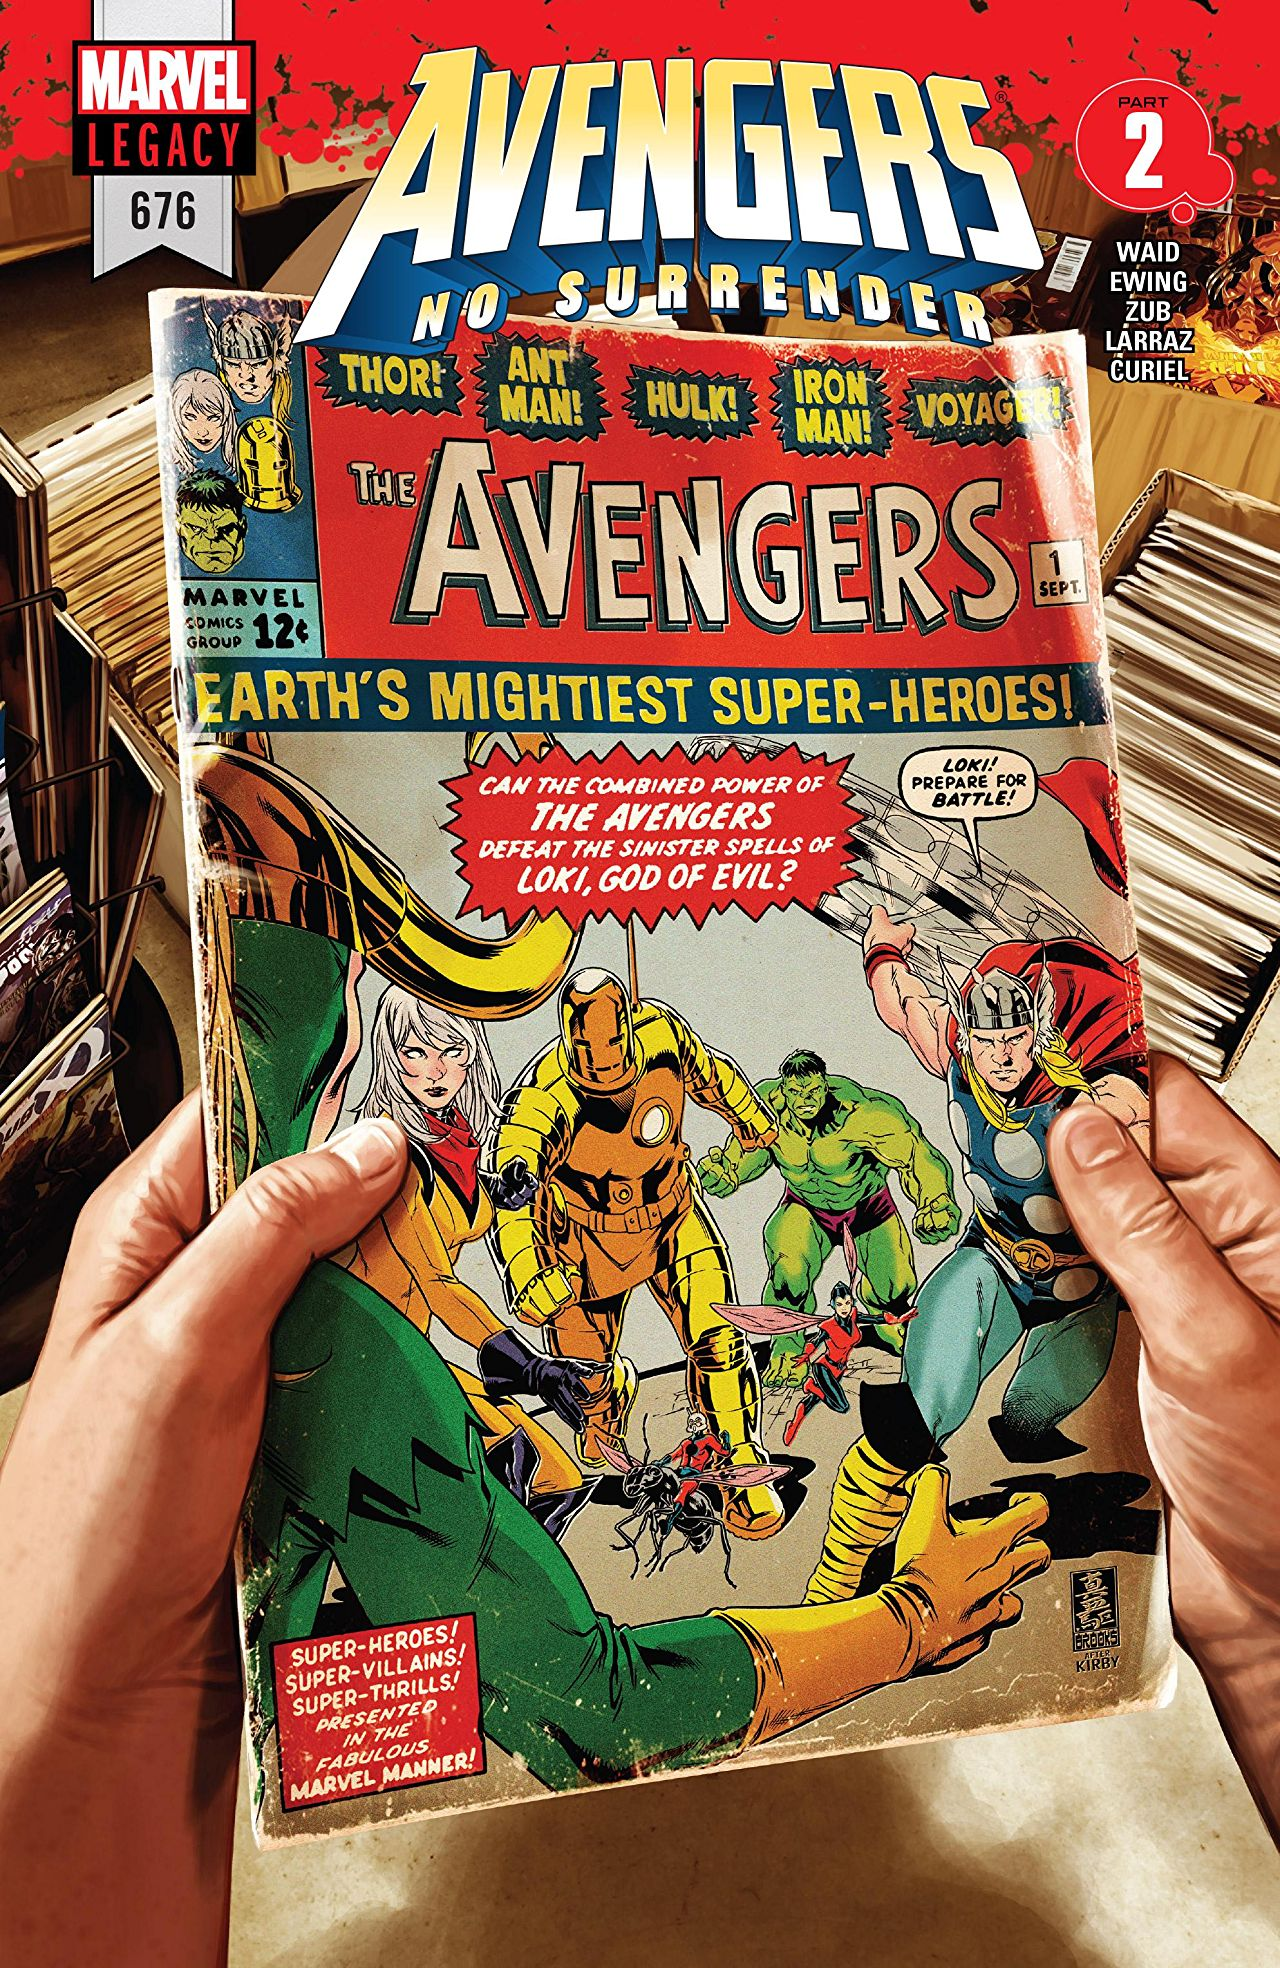 AVENGERS #675 VARIANT 3RD PRINTING 1ST APPEARANCE OF VOYAGER NO SURRENDER PART 1